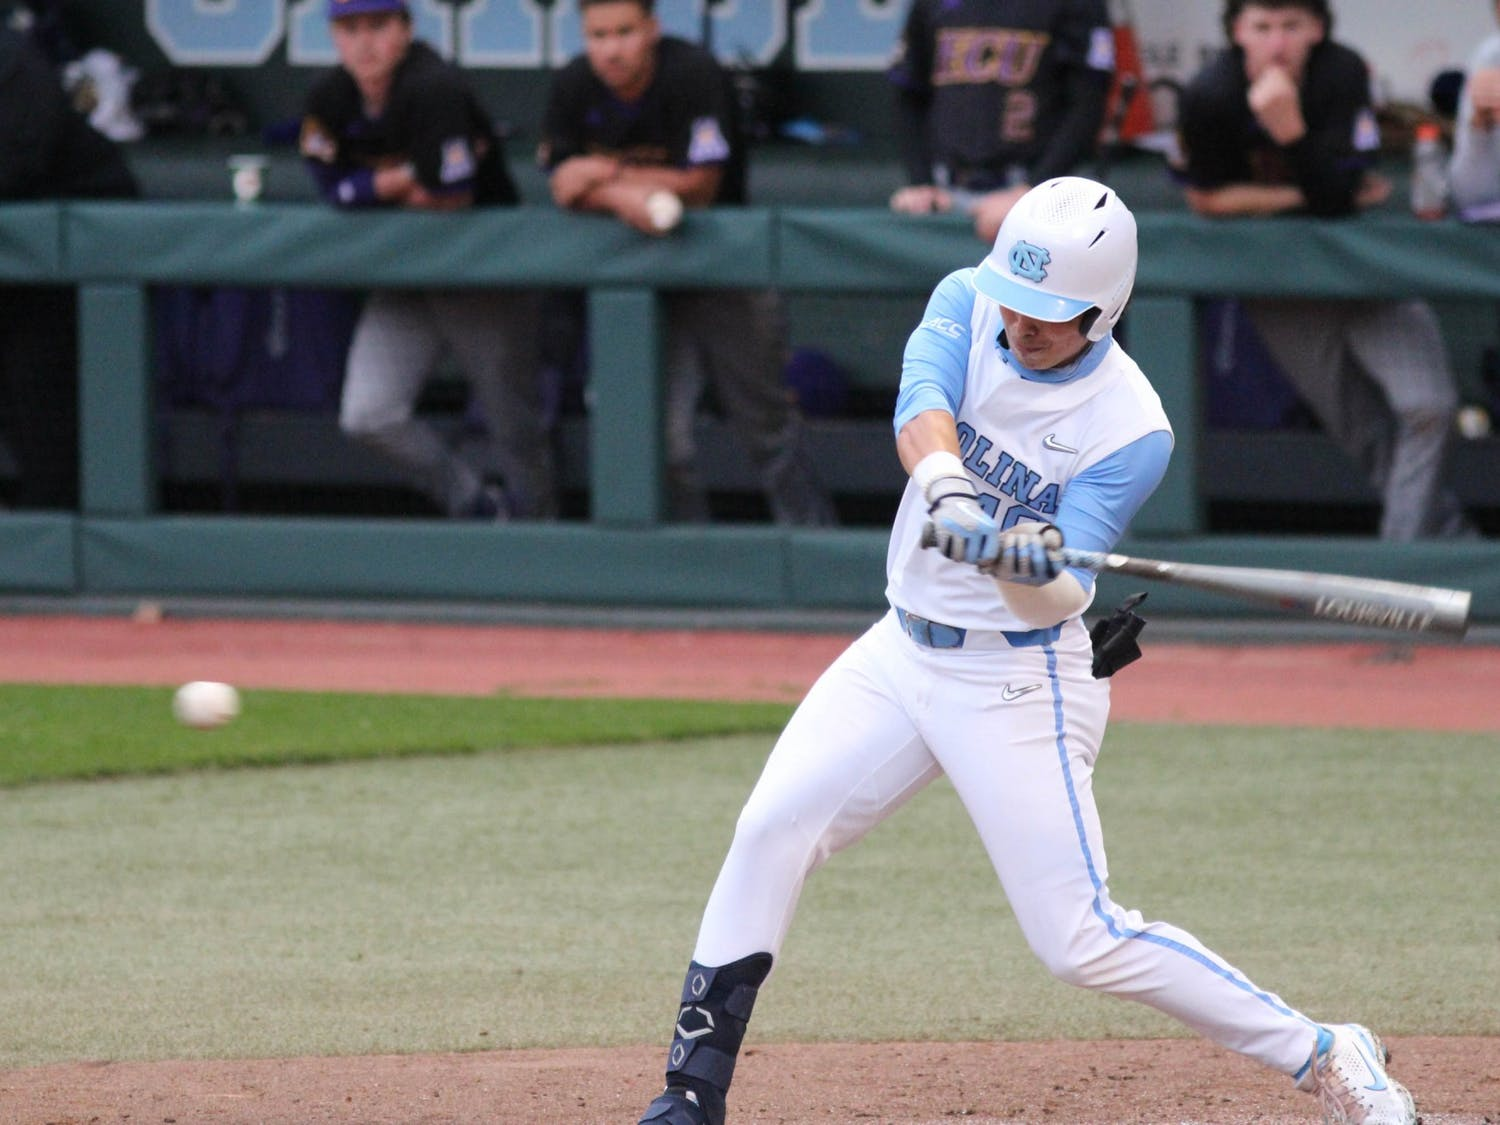 UNC redshirt sophomore outfielder Angel Zarate (42) offers at a pitch during the Tar Heels' game against East Carolina University at Boshamer Stadium on March 23, 2021. The Tar Heels defeated the Pirates 8-1.